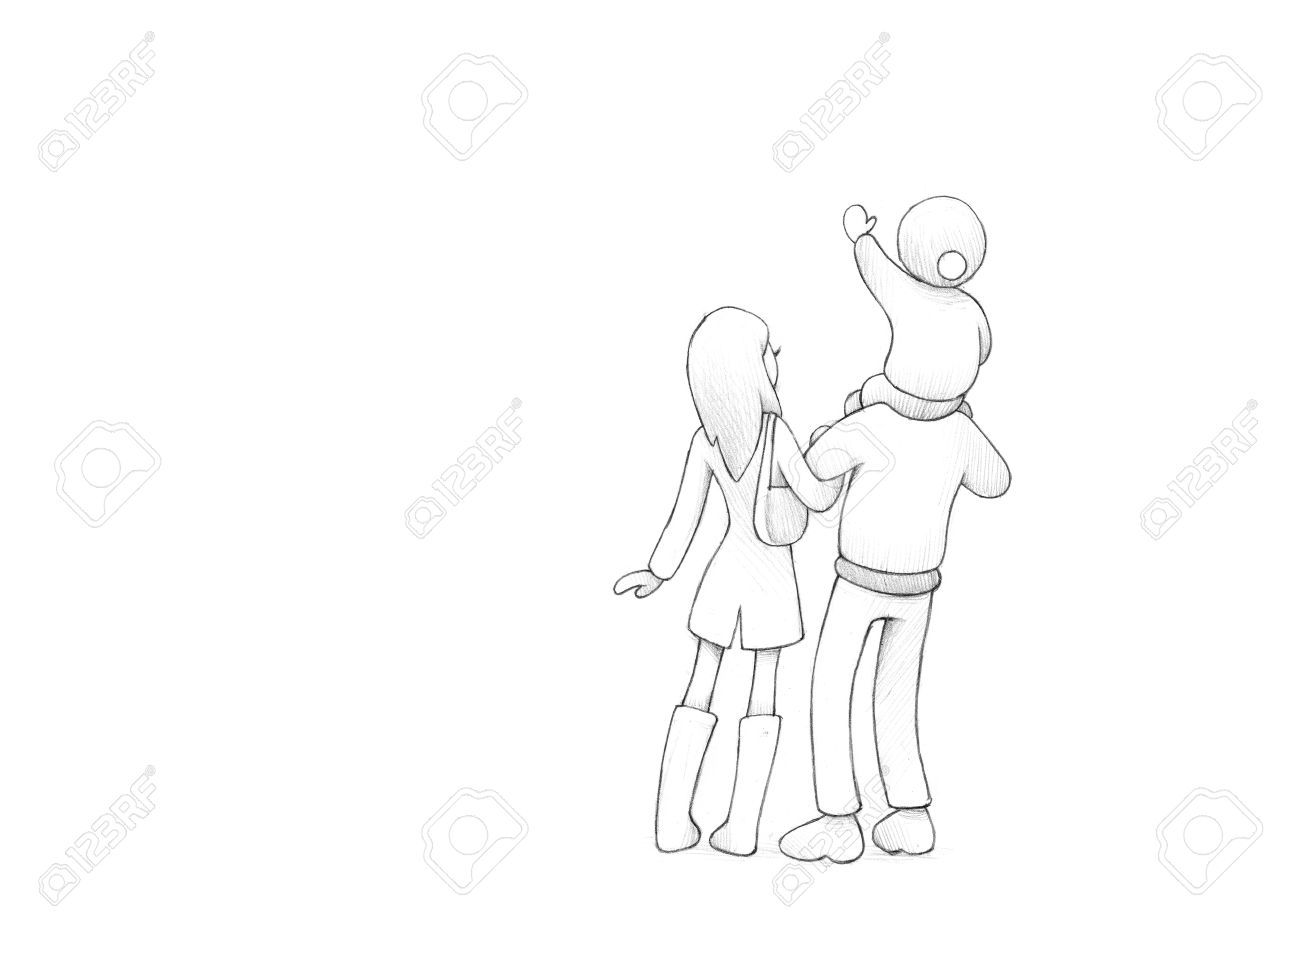 1300x953 Pencil Drawing Of Happy Family Celebrating New Year's Eve Together